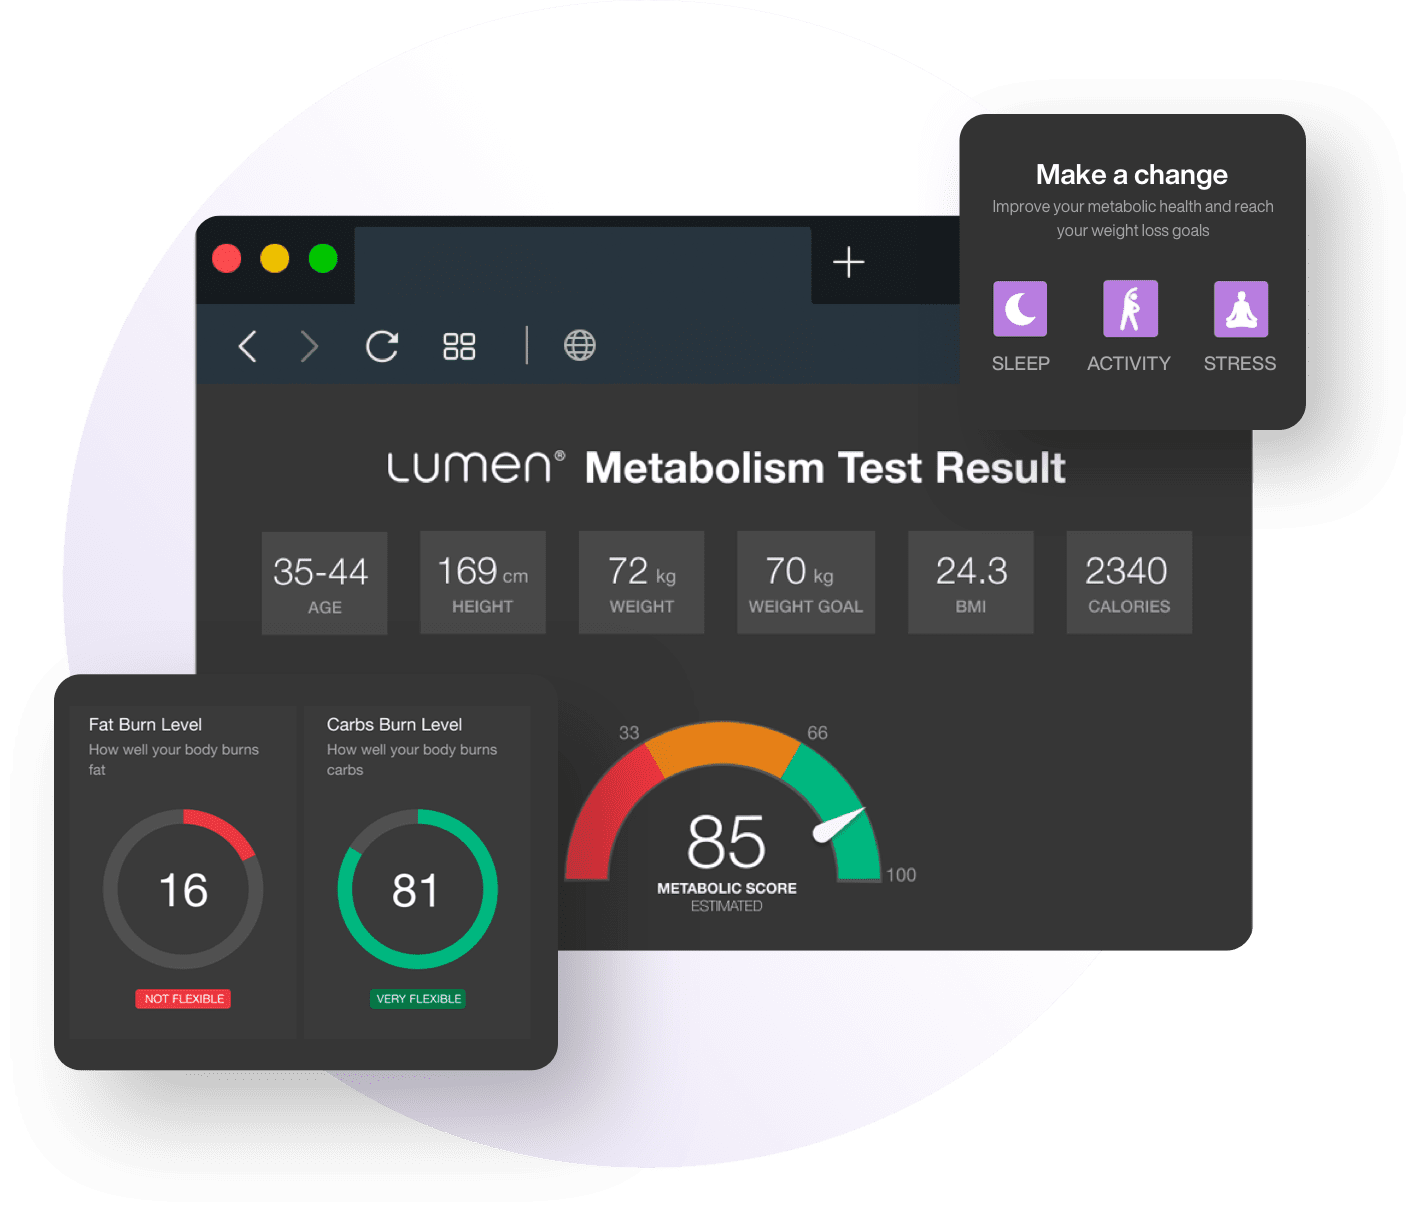 Dashboard with charts of the Lumen Metabolism Test Result.